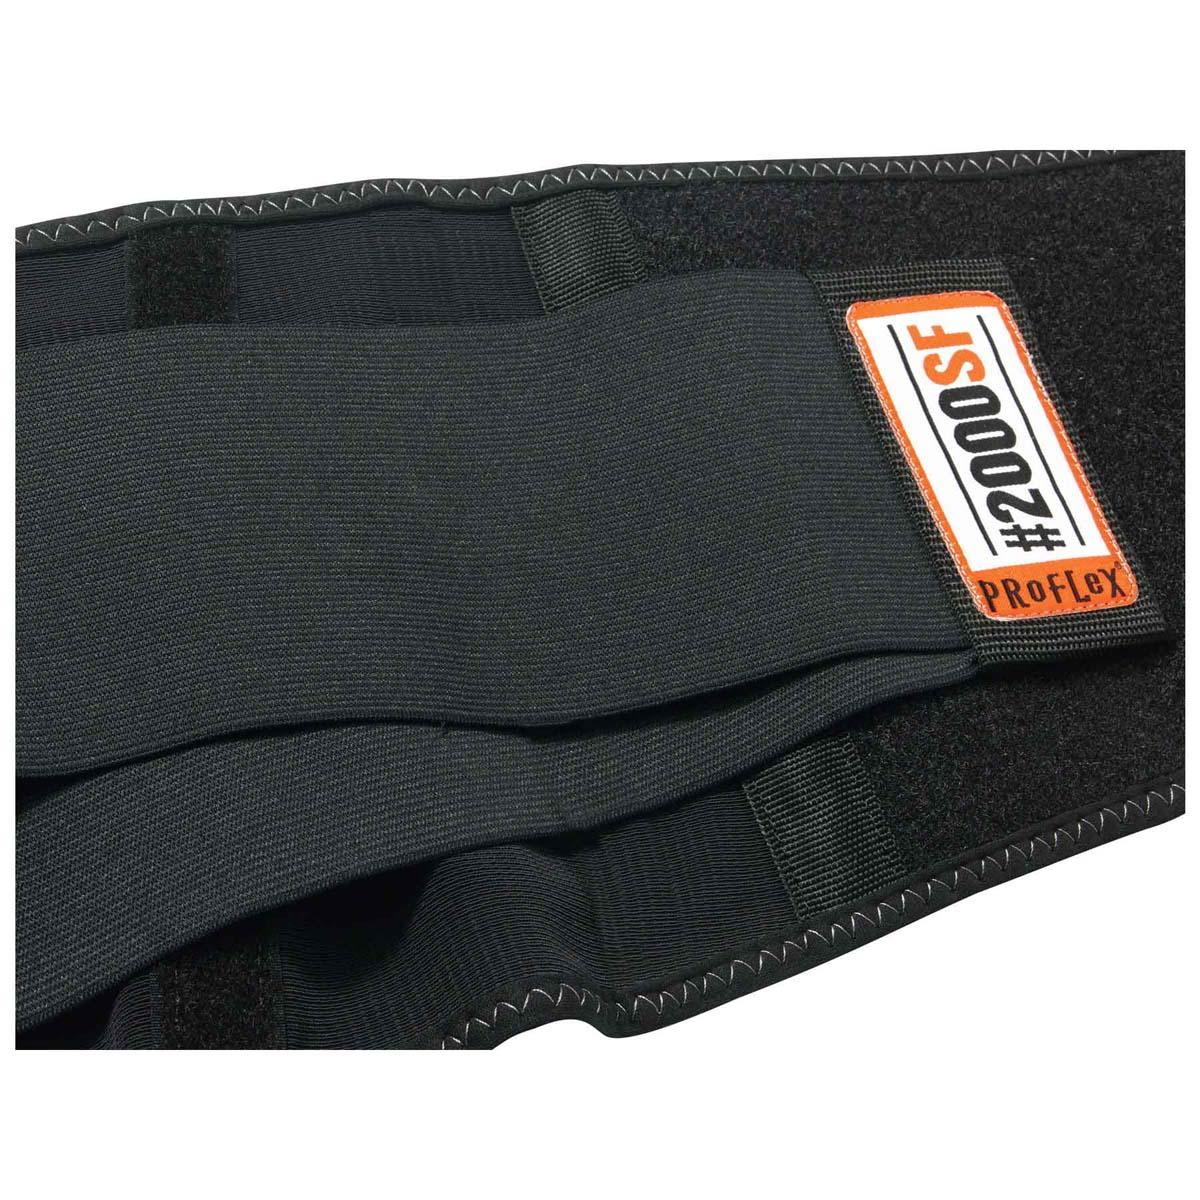 2000SF XL Black High-Performance Back Support